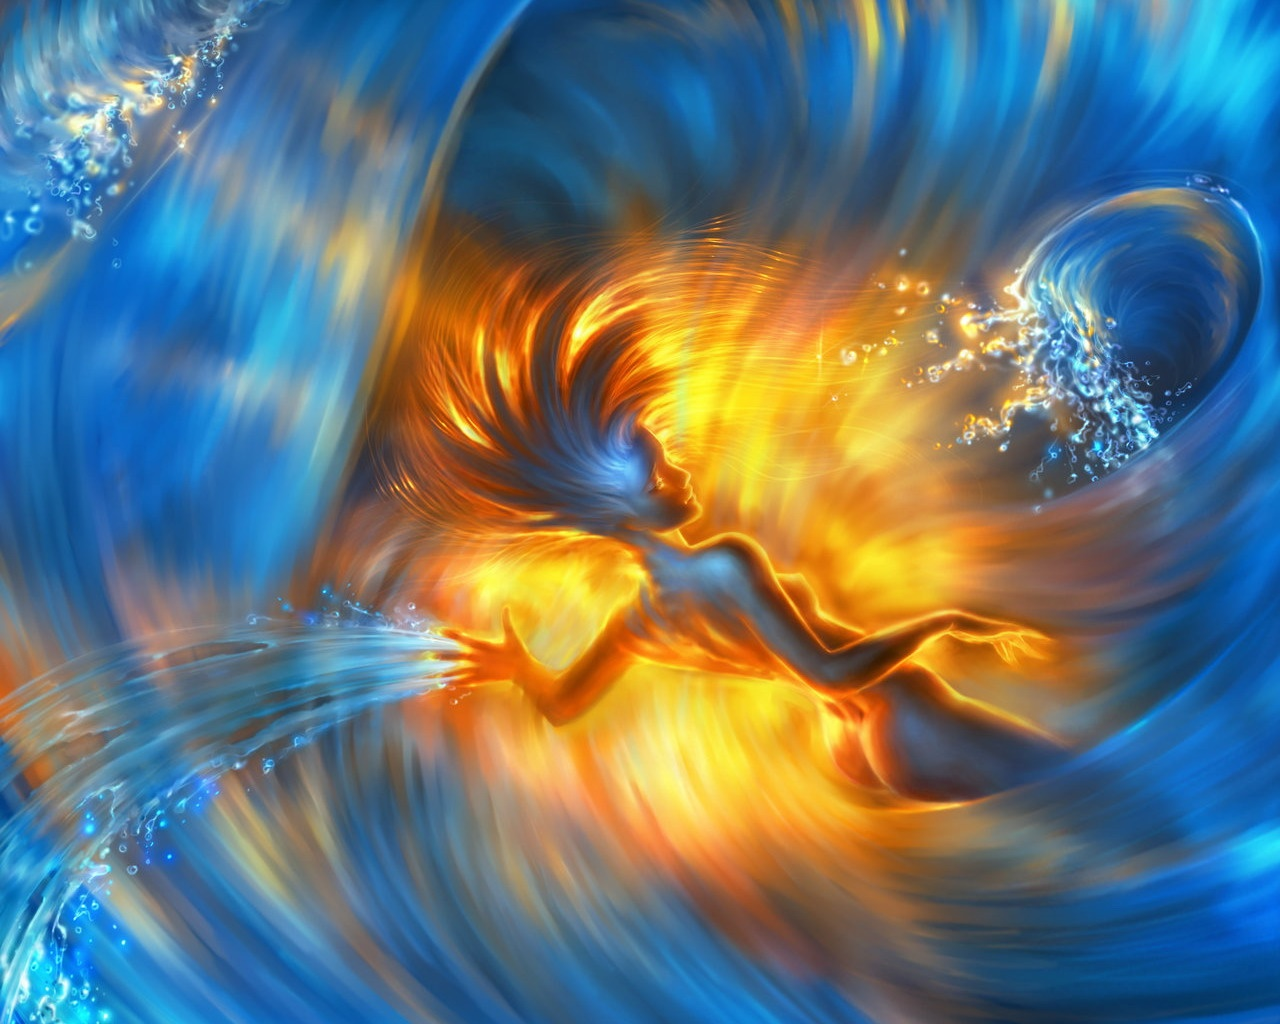 Aquarius-wallpaper-wp520140